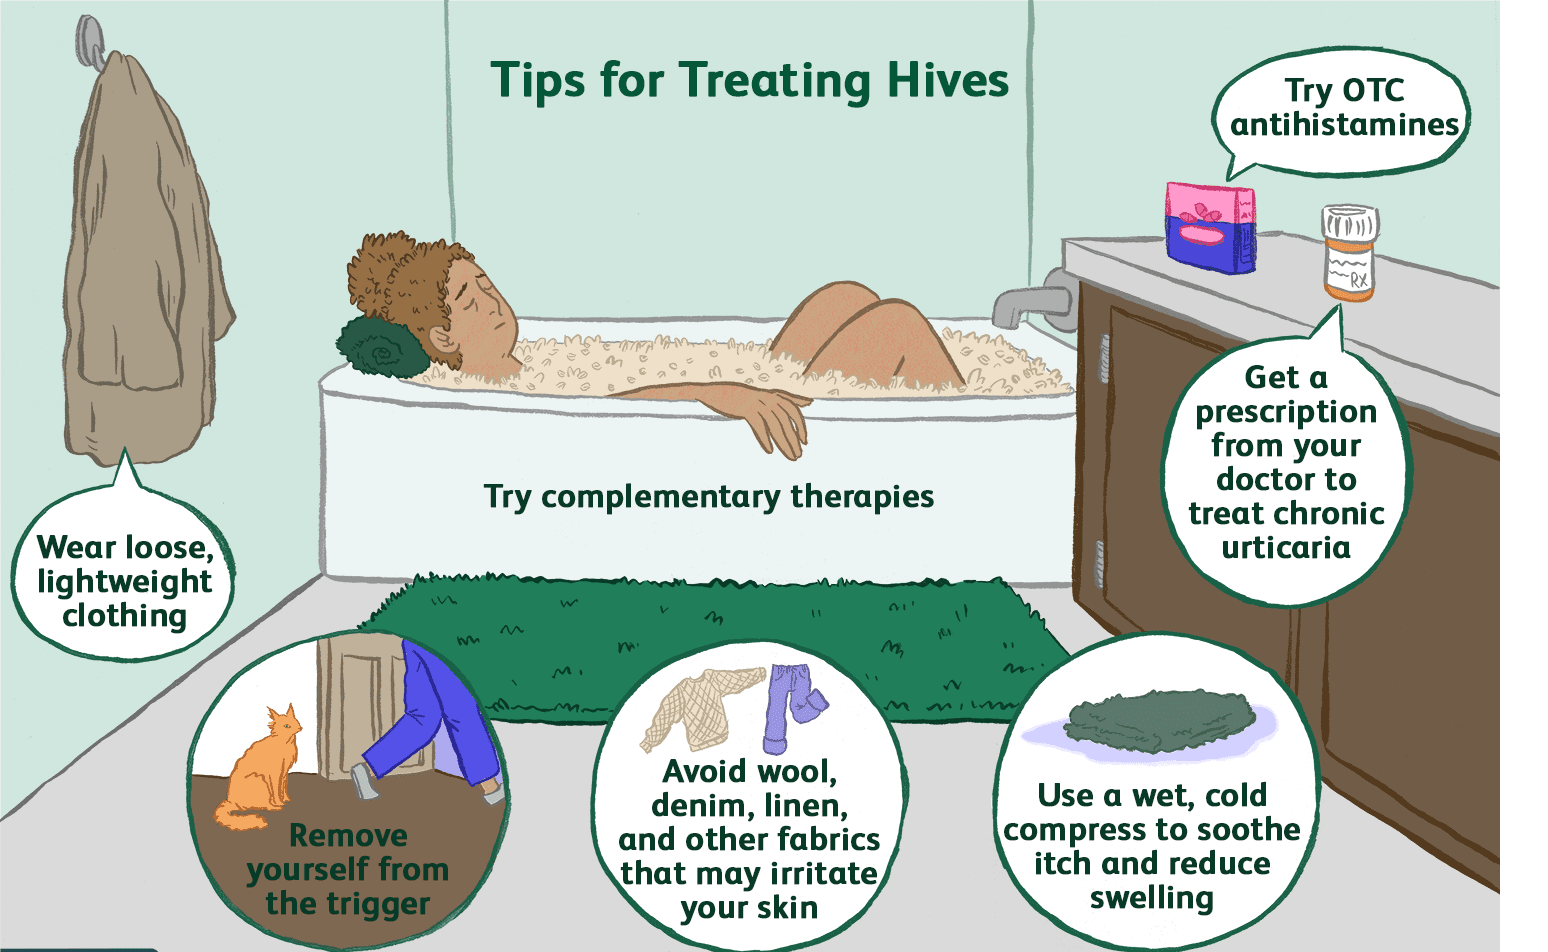 Get now Best Tips and Treating for Hives by Dr Swapna Priya, One of the best Skin doctor in Hyderabad